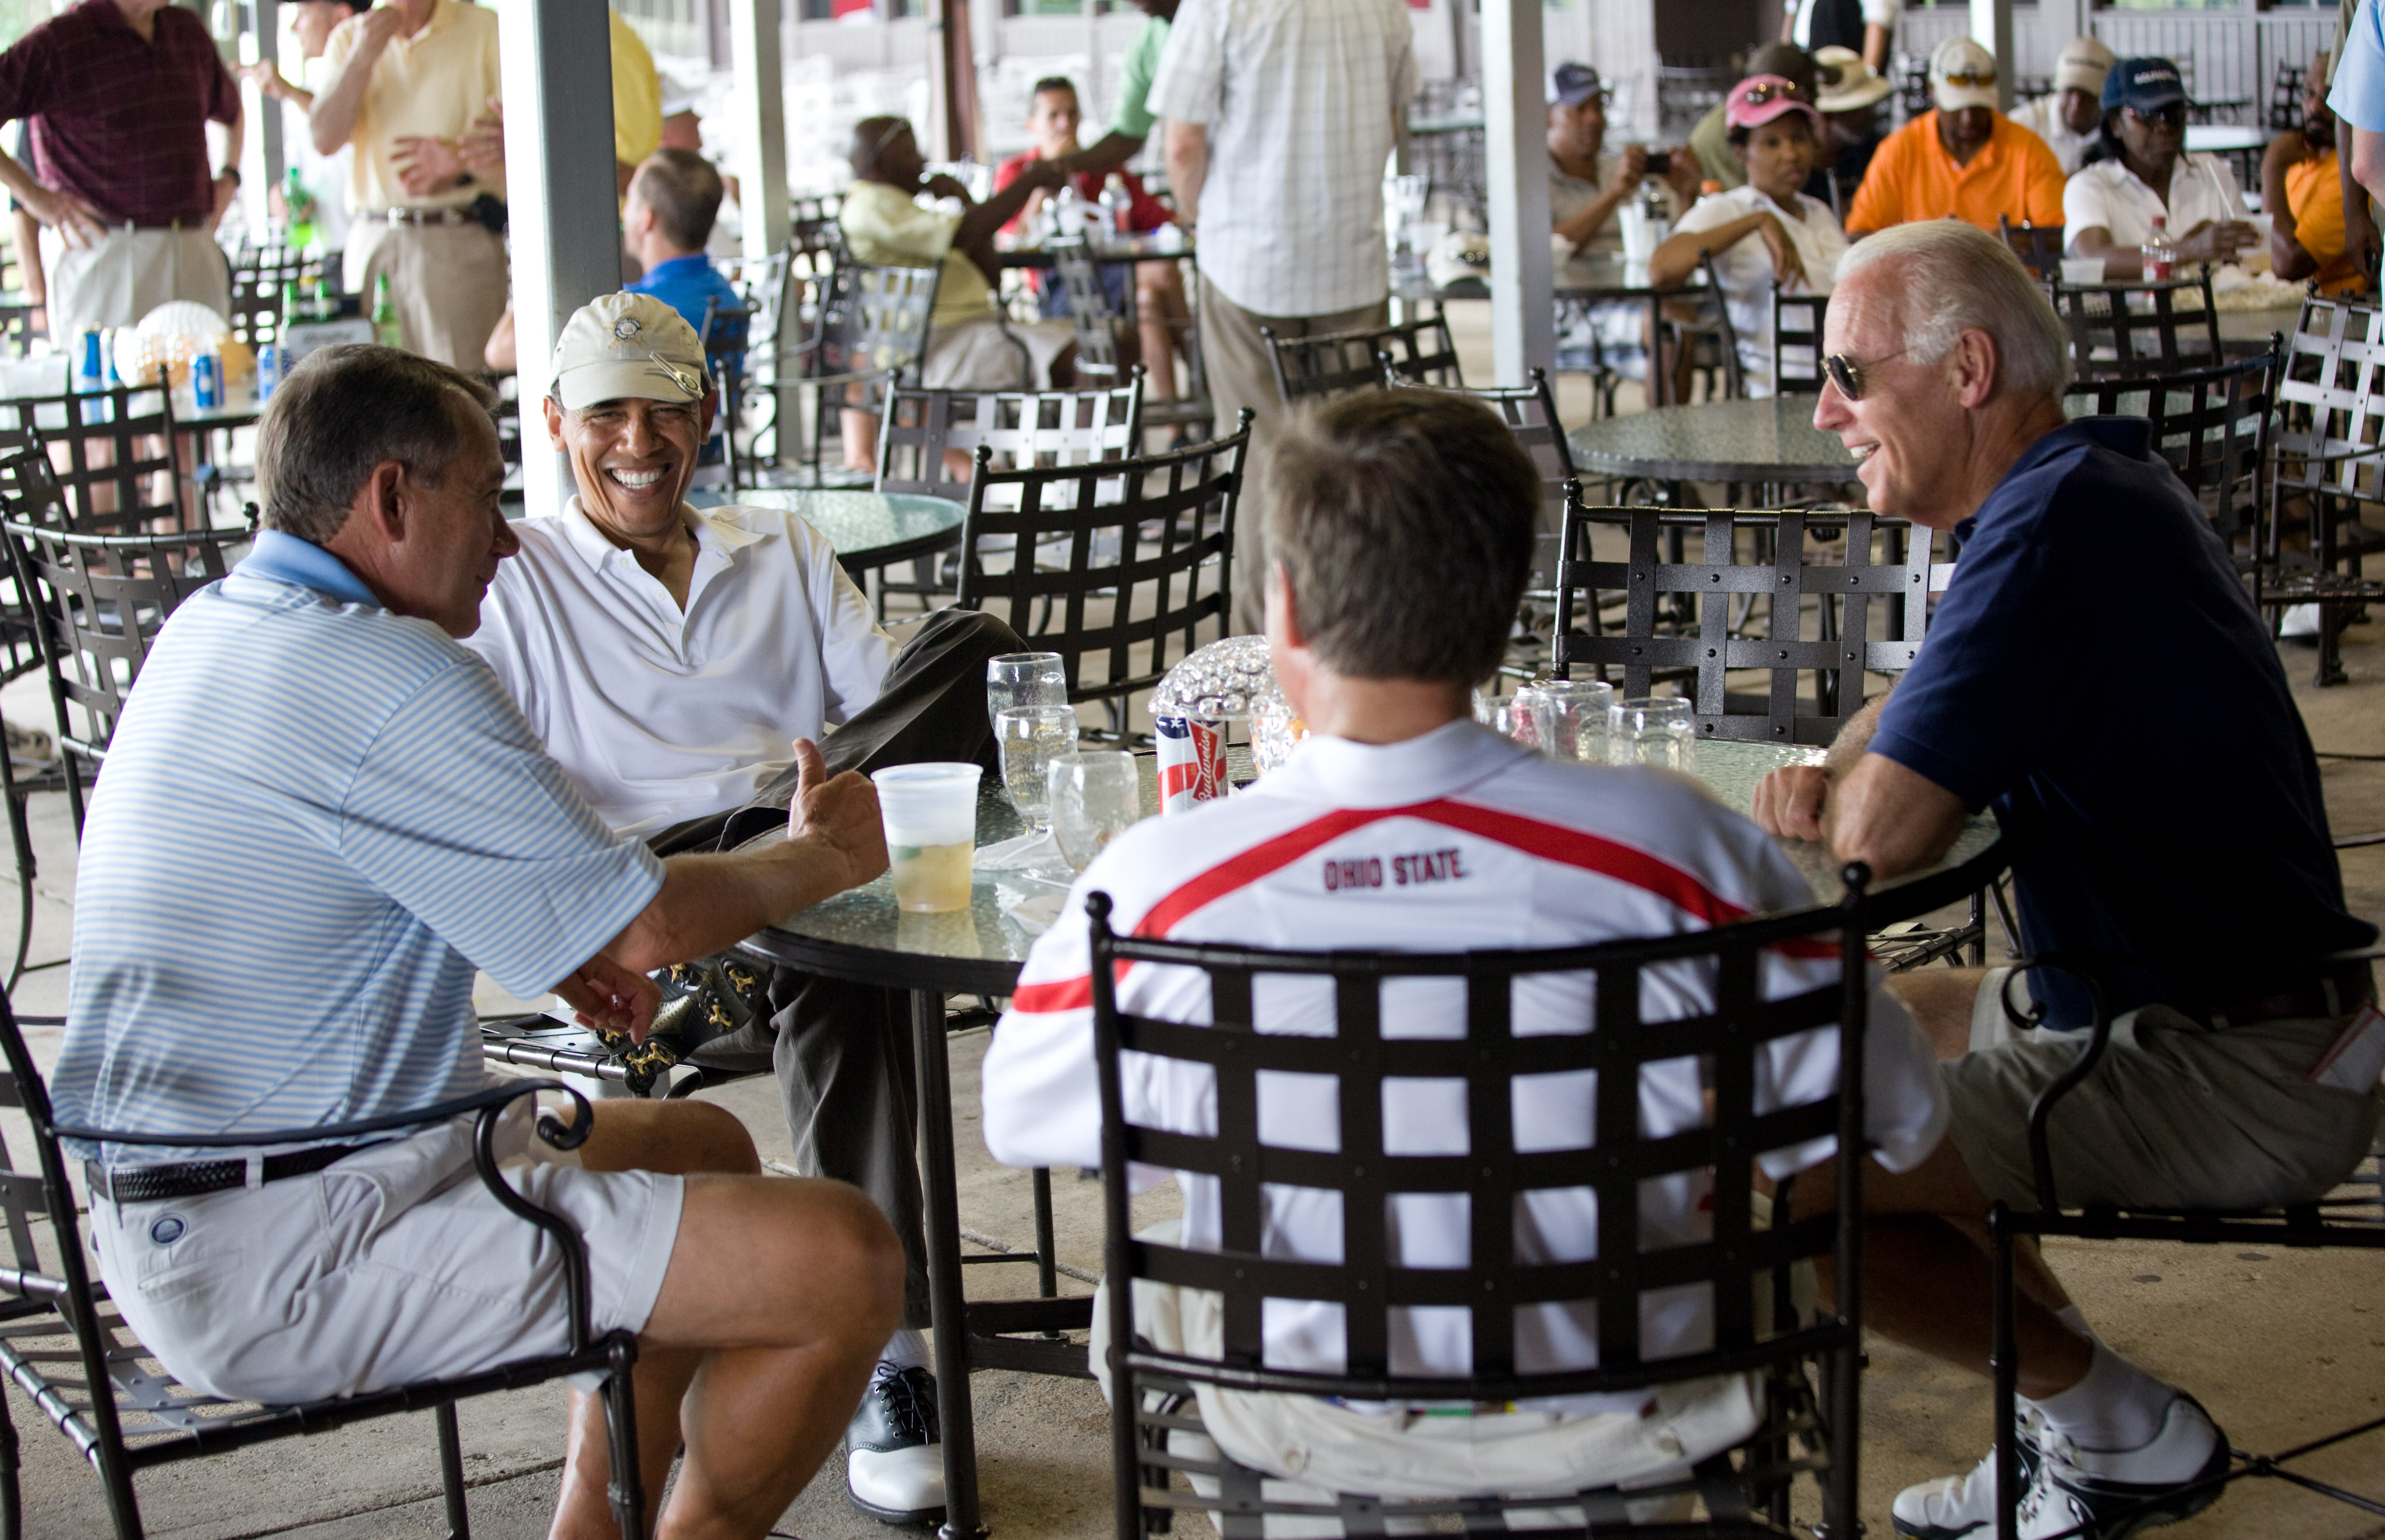 After playing a round of golf, President Barack Obama has a drink with Vice President Joe Biden